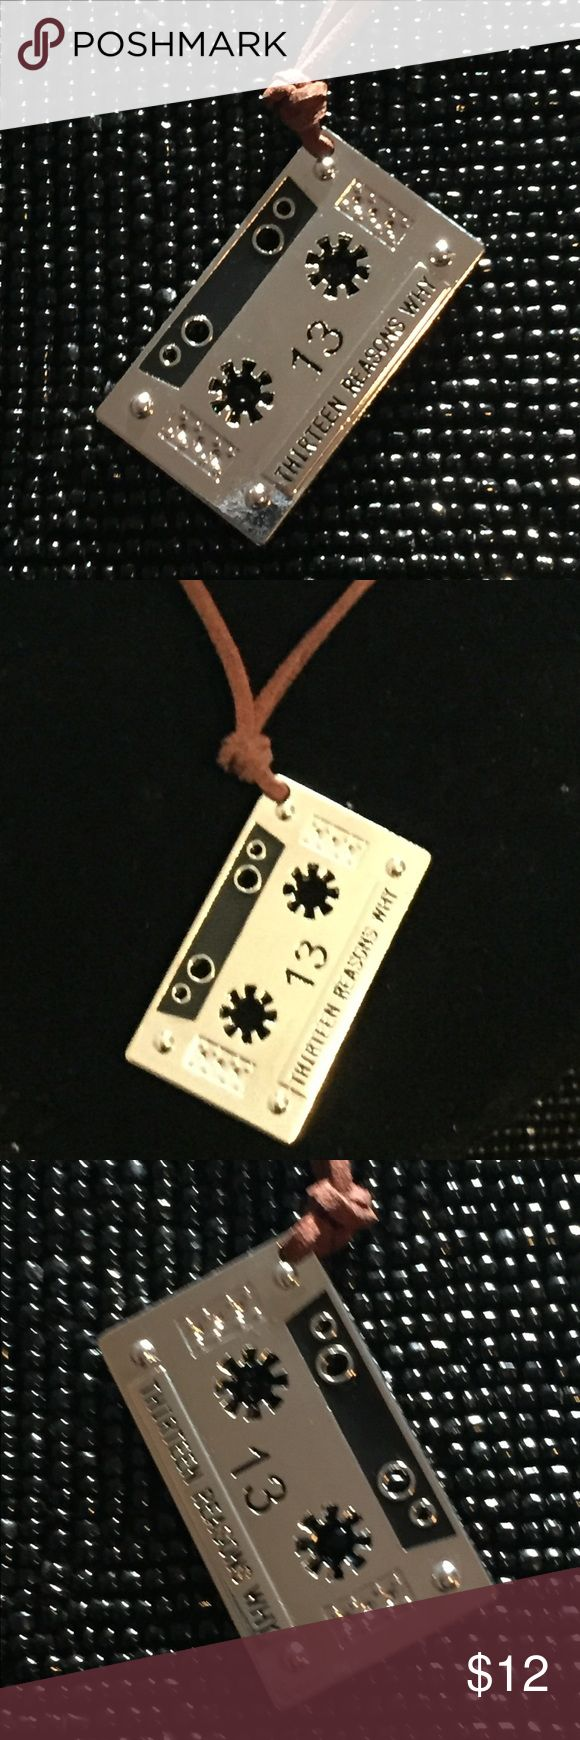 "Cult Of Personality, 13 Reasons Why Necklace NWT Emporiama's Cult Of Personality, 13 Reasons Why Necklace, NWT  *Special Price Through February 12th, After February 12th, This Item Returns To $12*  This Cassette Is A Base Of Silver Tone Metal Engraved & Stamped  Thirteen Reasons Why  The Design Appears On Both Sides The Cord Is Leather  The Cord  Measures 32"" Long  The Metal Cassette Measures 1.75"" Wide x 1"" Tall  Two Of These Are Available  Bundle Two Or More Items From My Shop & Save 25%…"